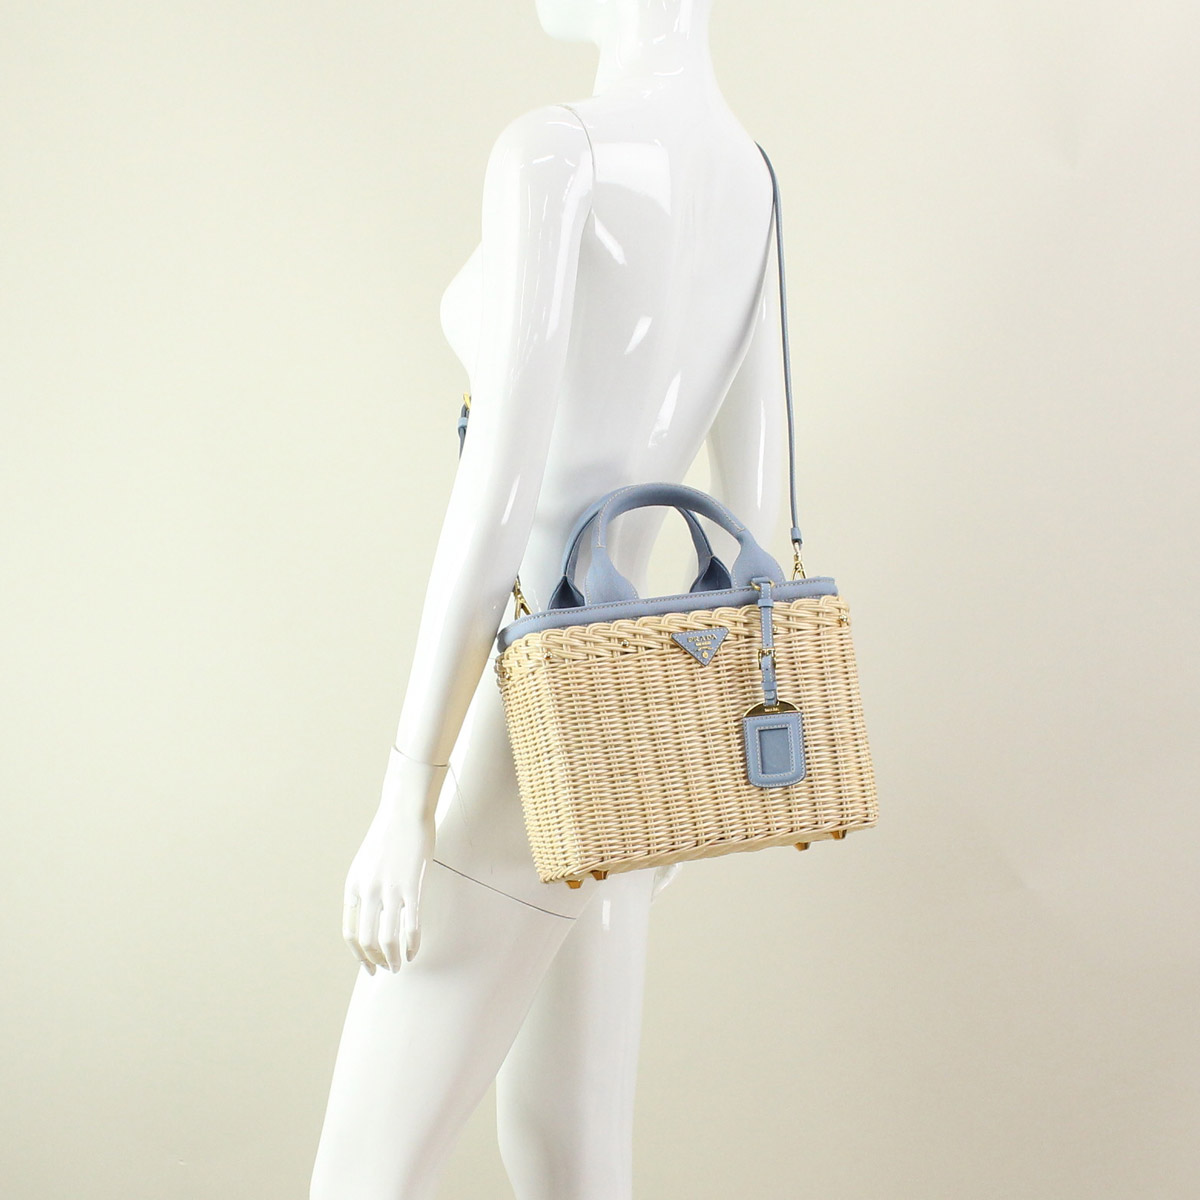 Prada (PRADA) handbags 1BG835-2E28-F0JZ8 NATURALE+ASTRAL blue( taxfree/send by EMS/authentic/A brand new item )